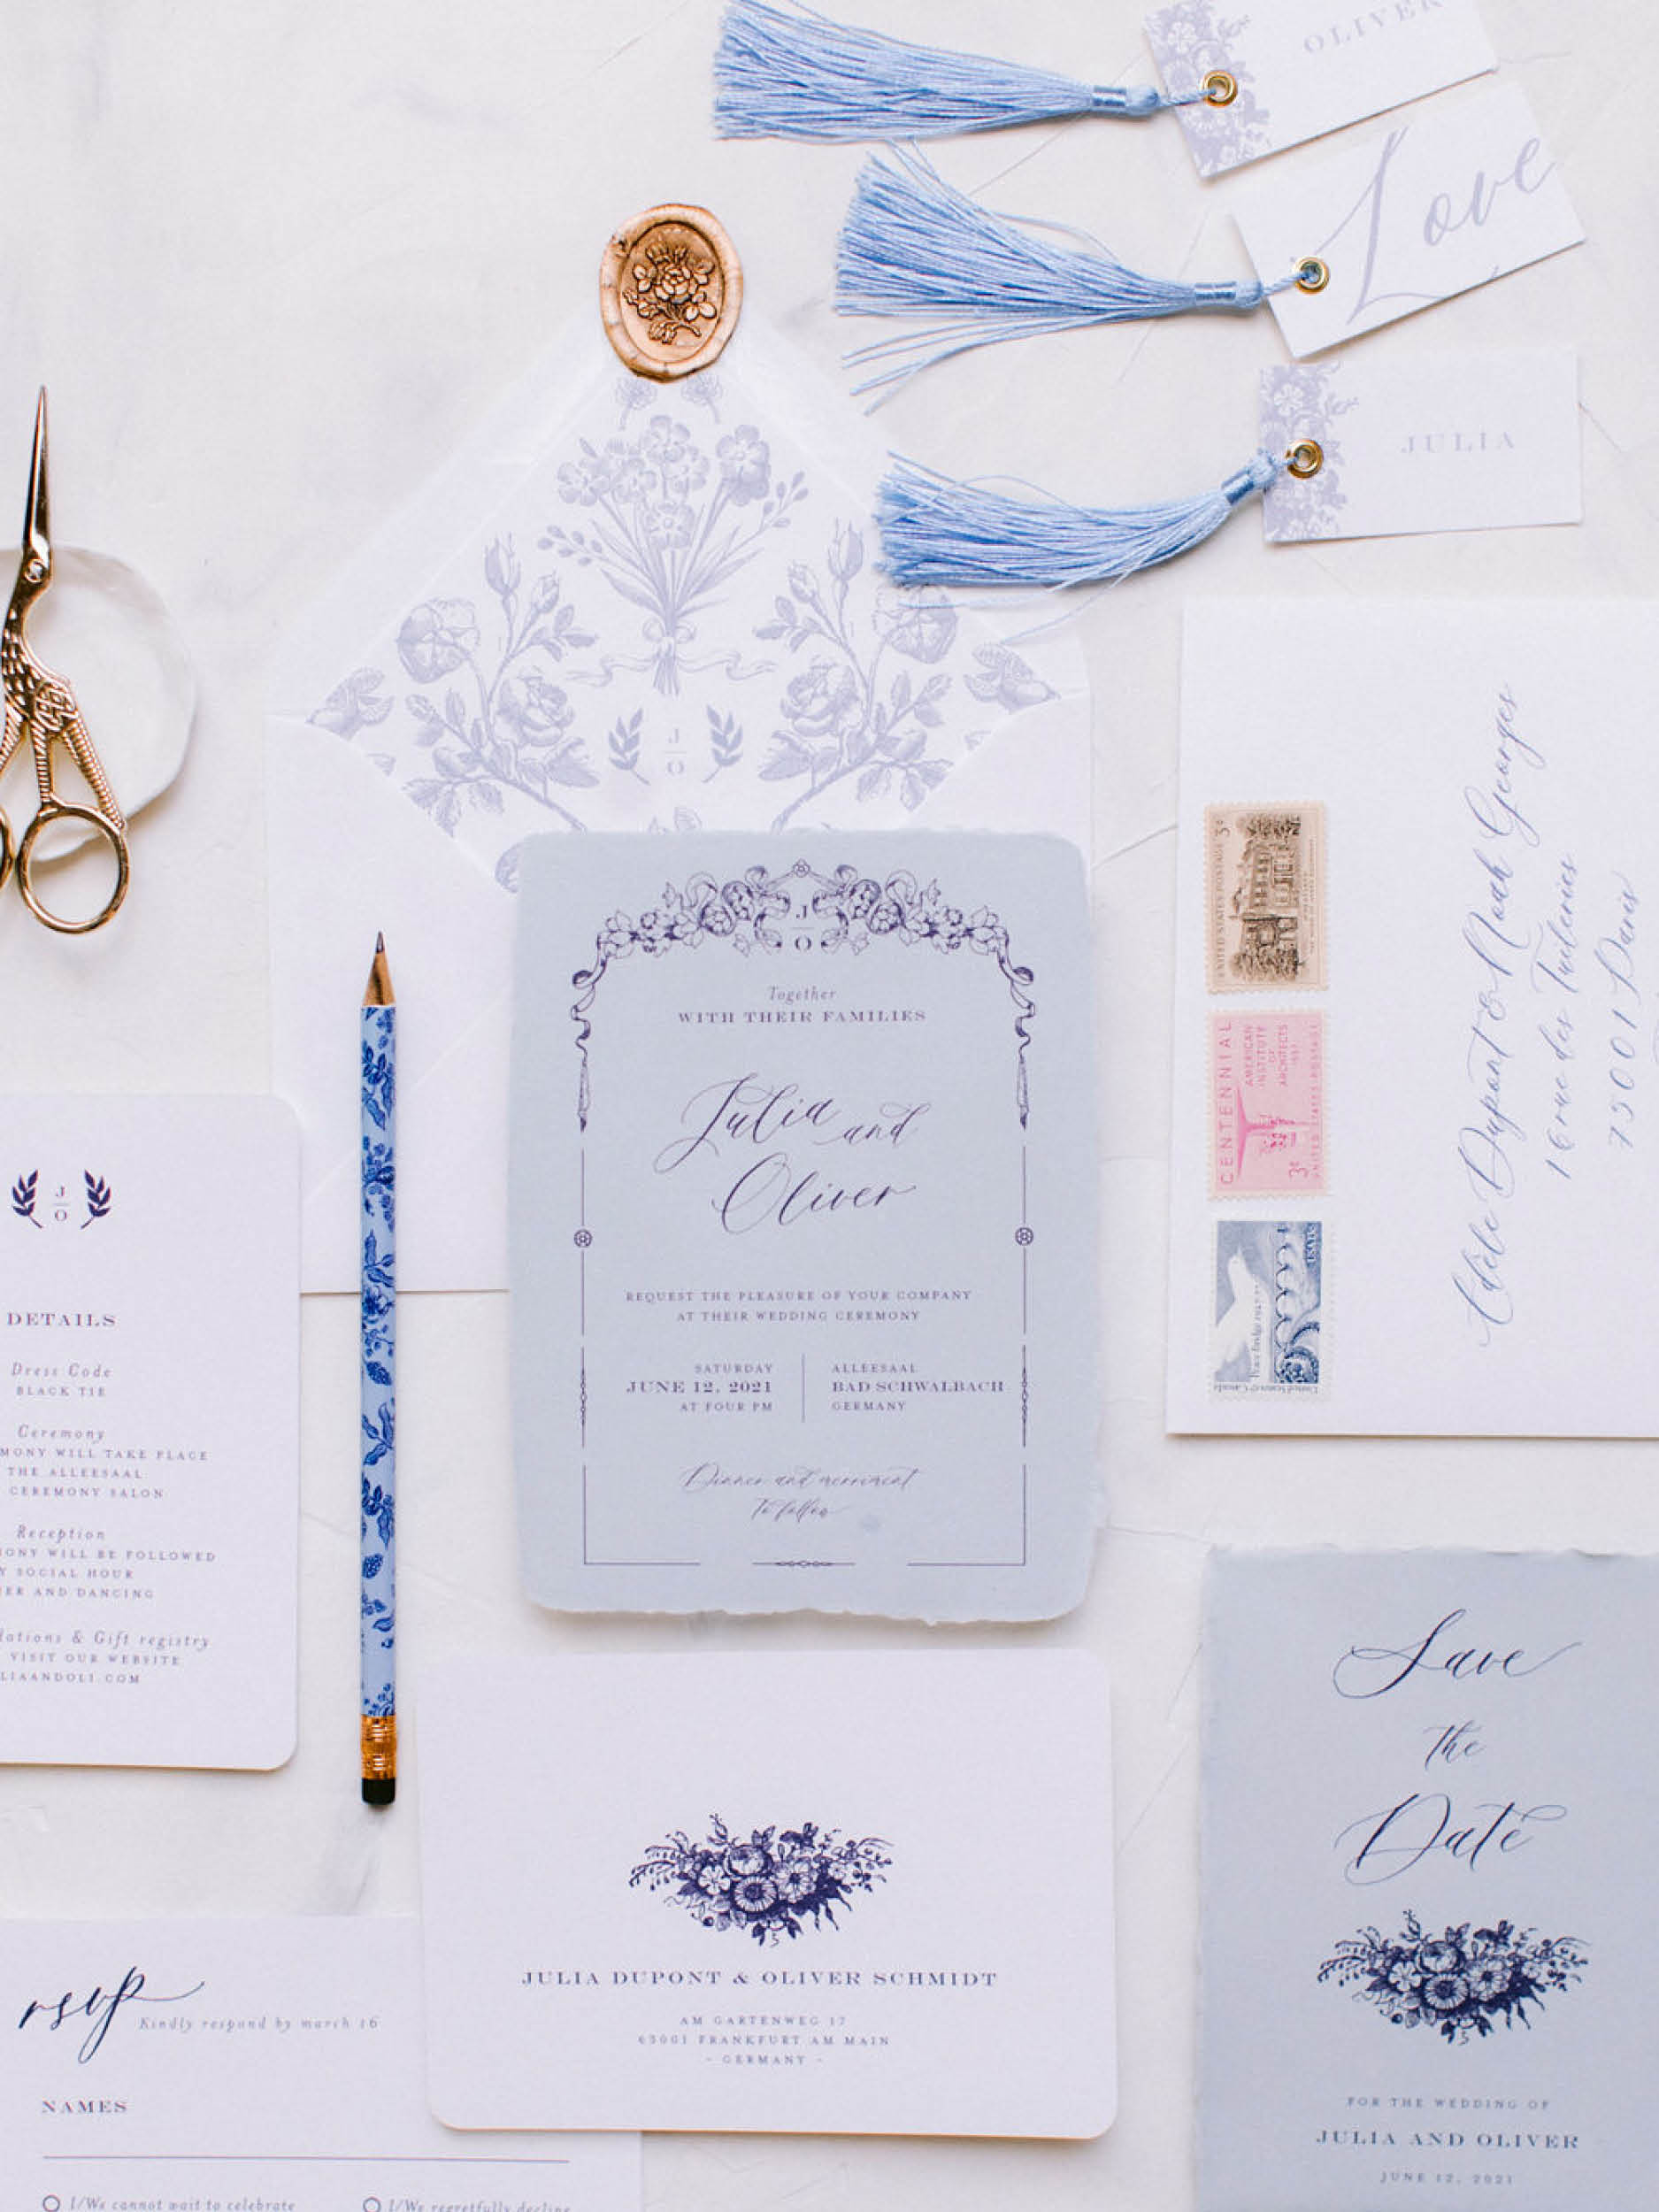 Something Blue Wedding with Toile de Jouy Details